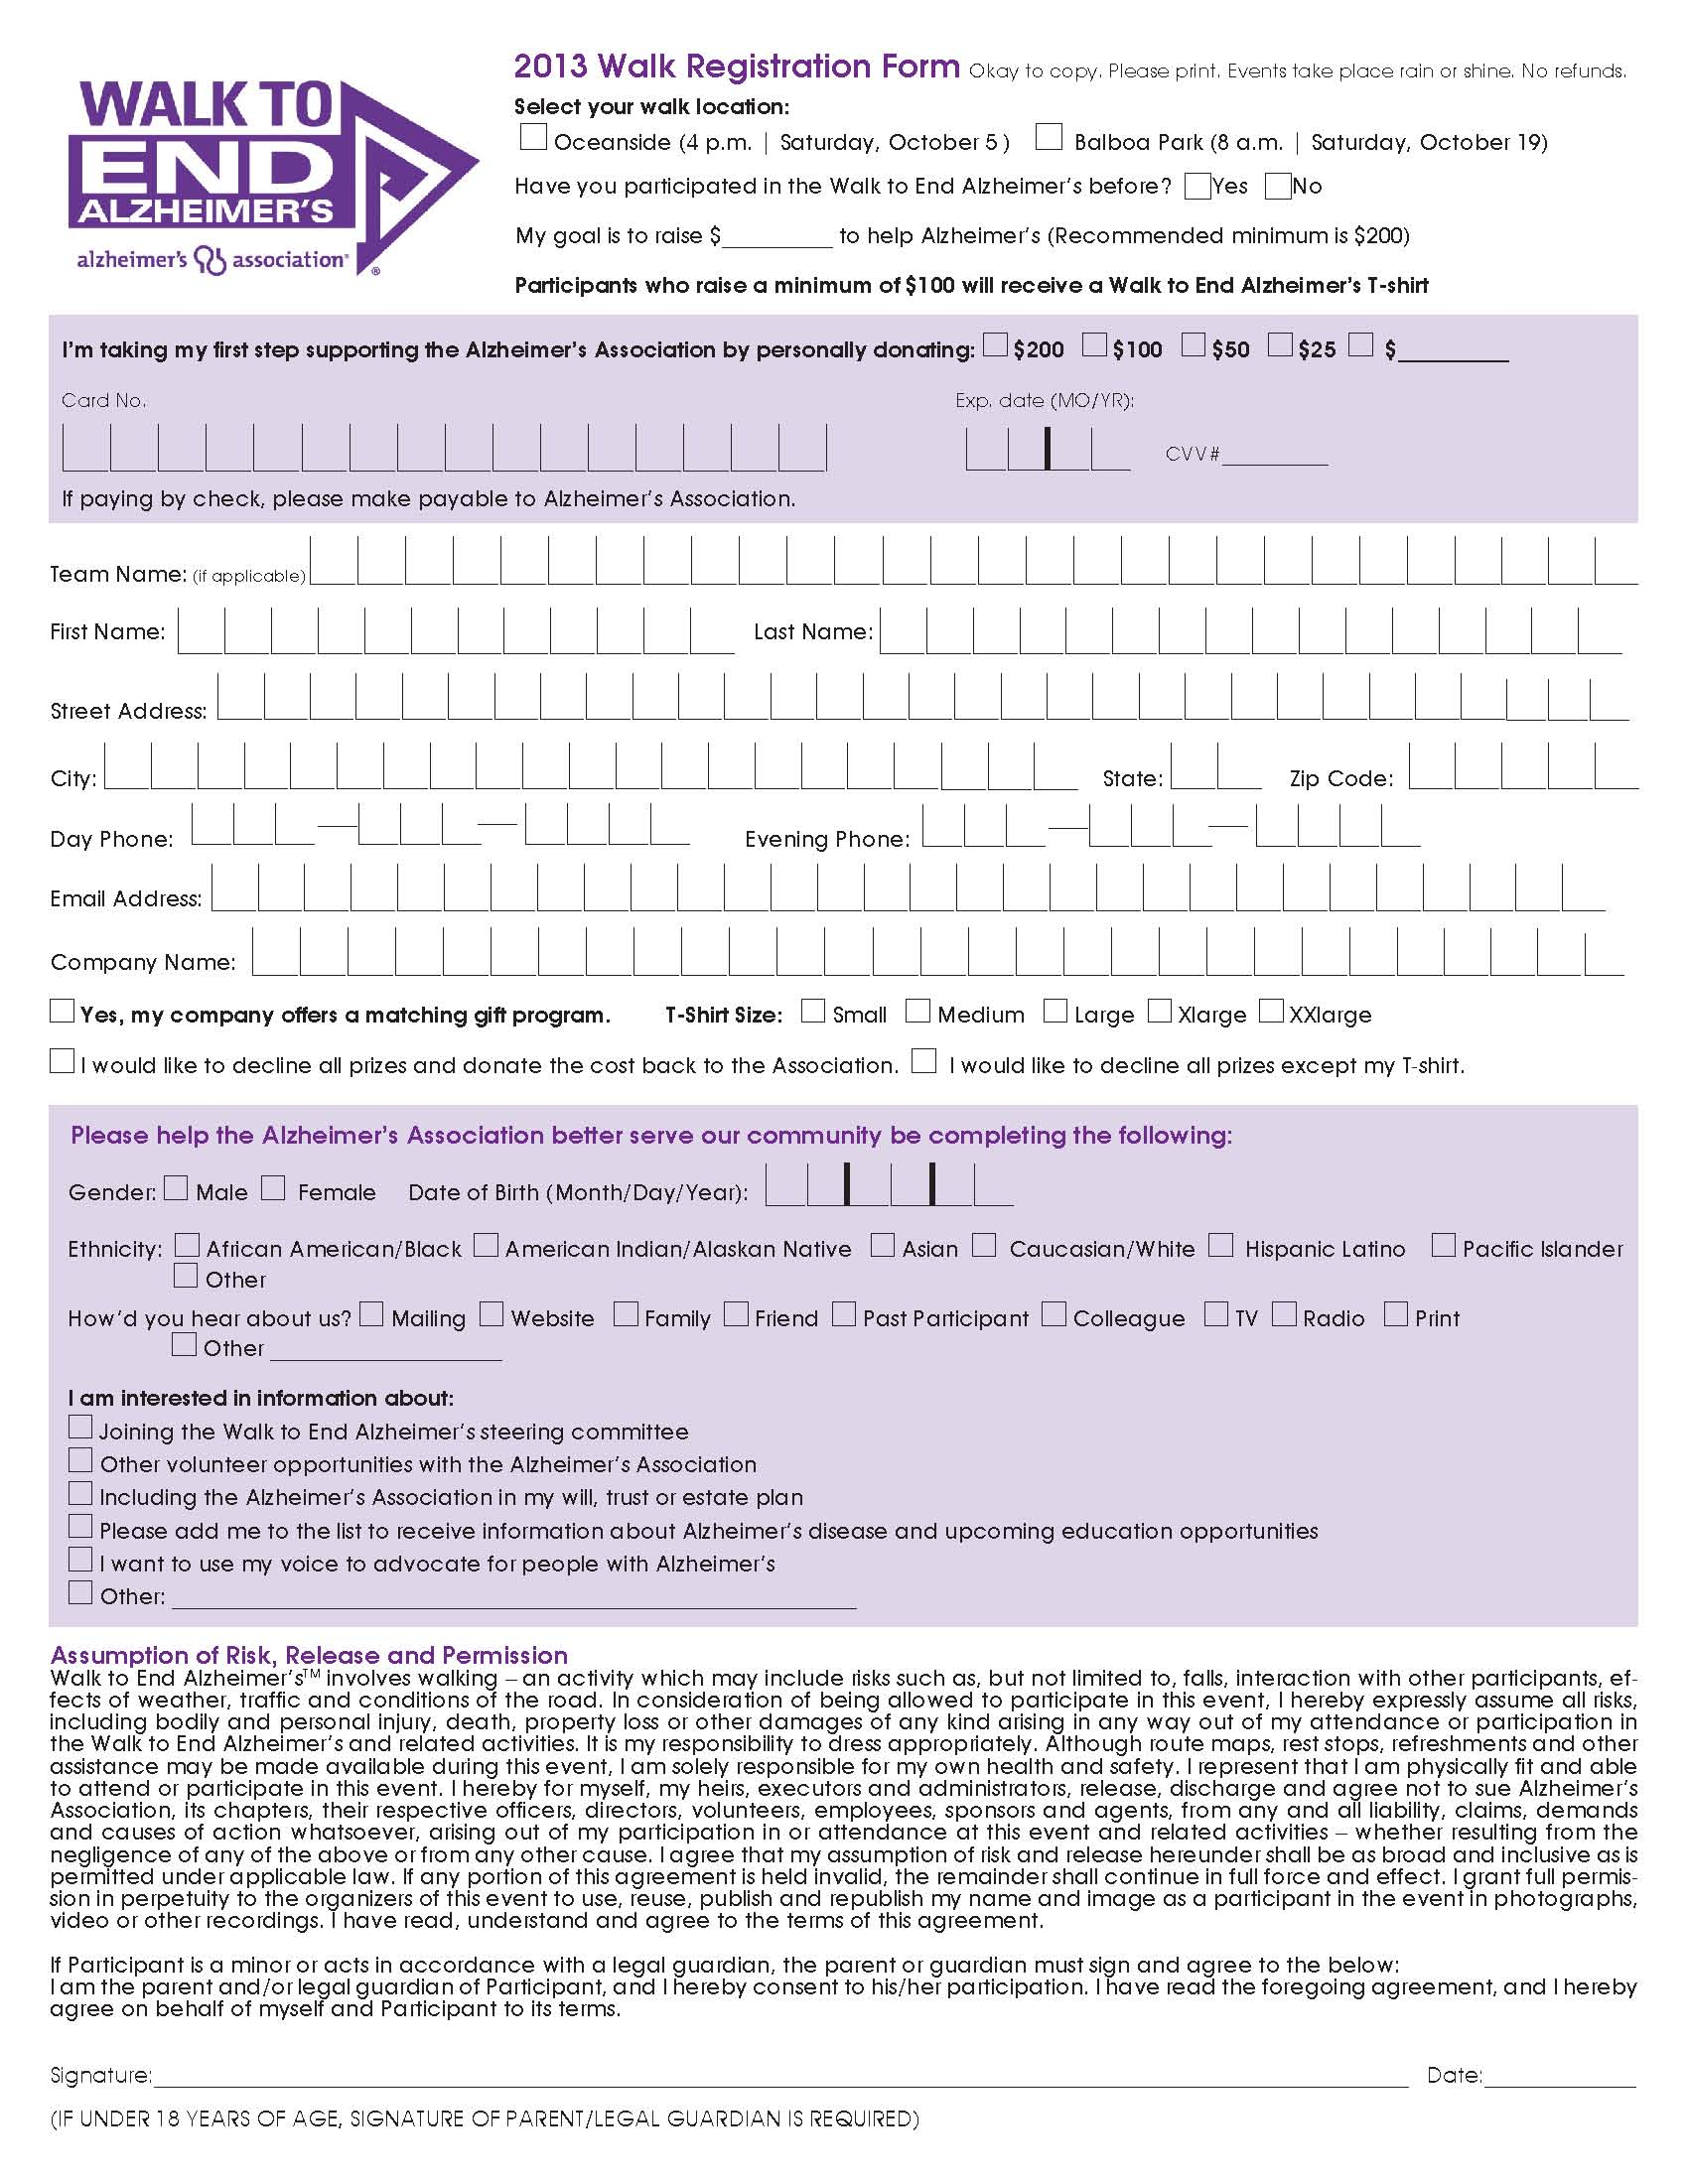 2013 Paper Registration Form.jpg